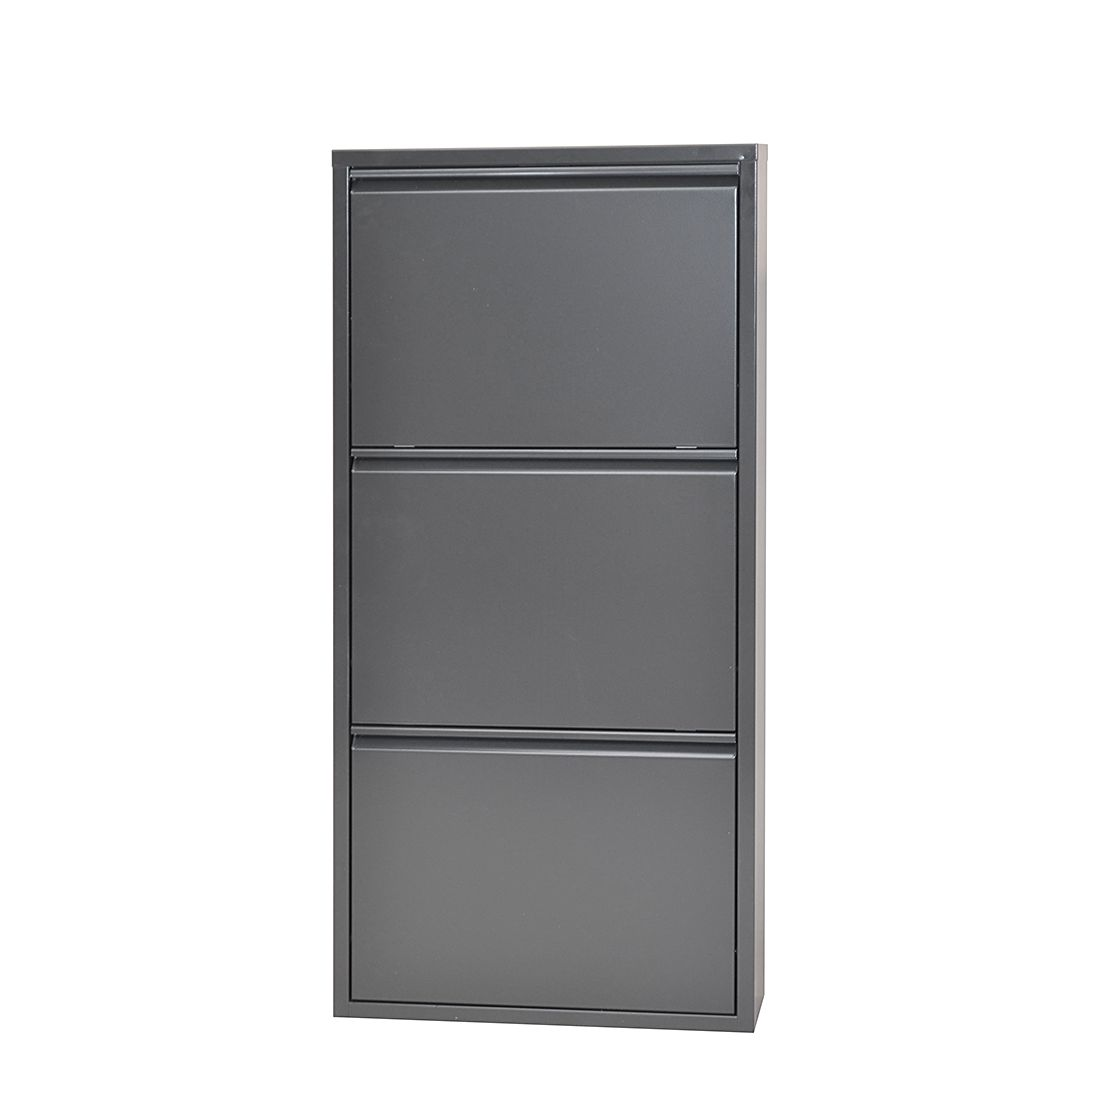 schuhschrank 15cm preisvergleiche erfahrungsberichte und kauf bei nextag. Black Bedroom Furniture Sets. Home Design Ideas